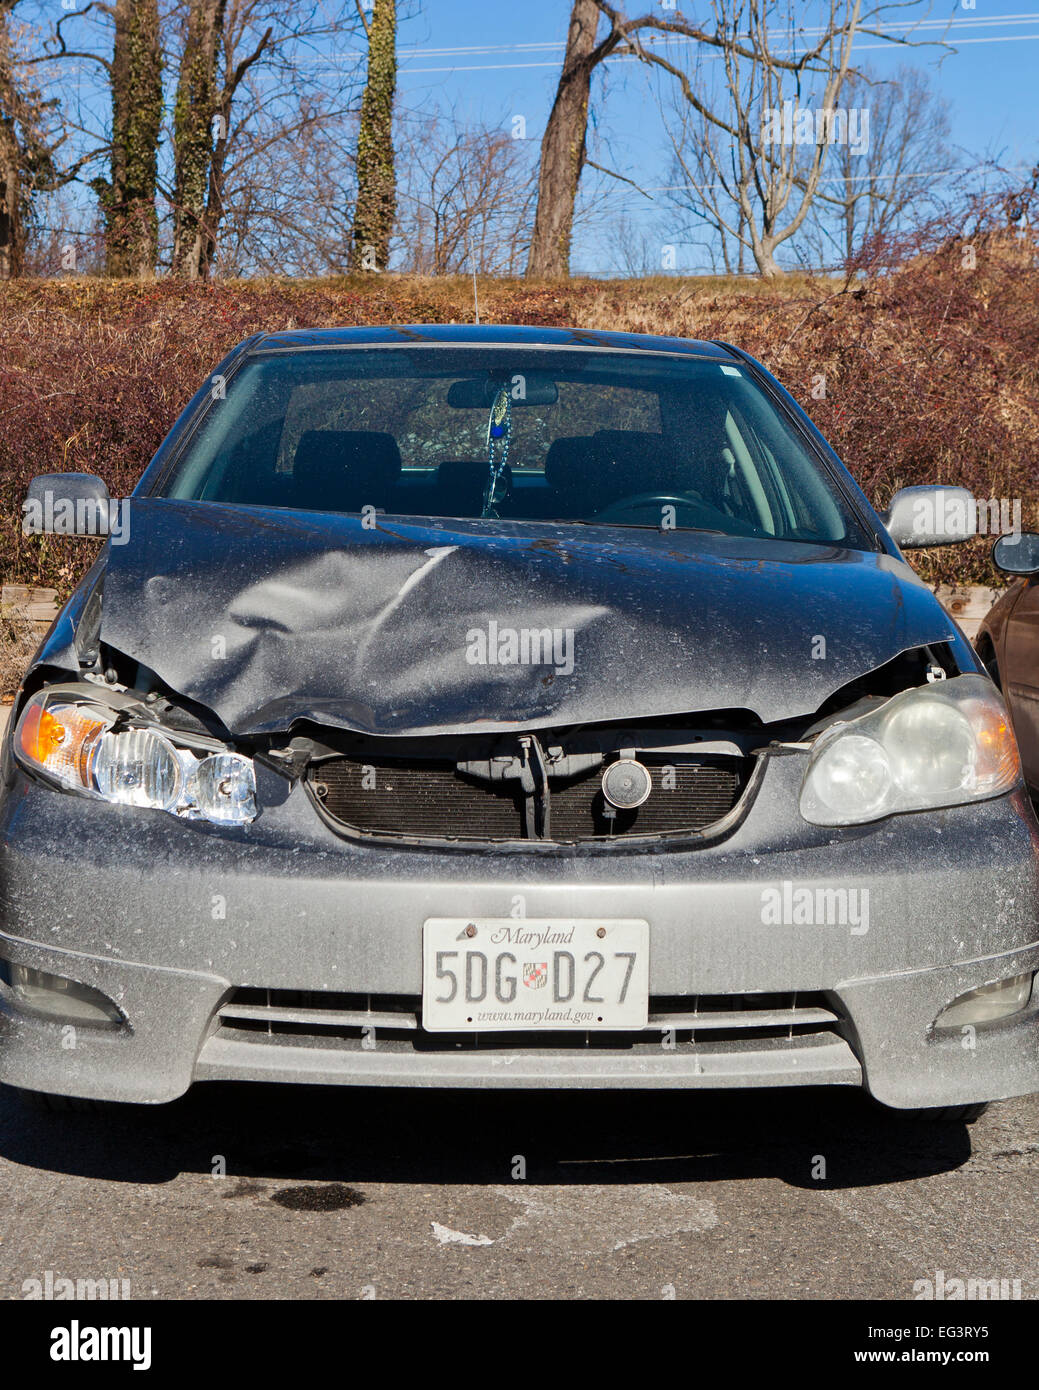 Compact car with frontal collision damage - Maryland USA - Stock Image